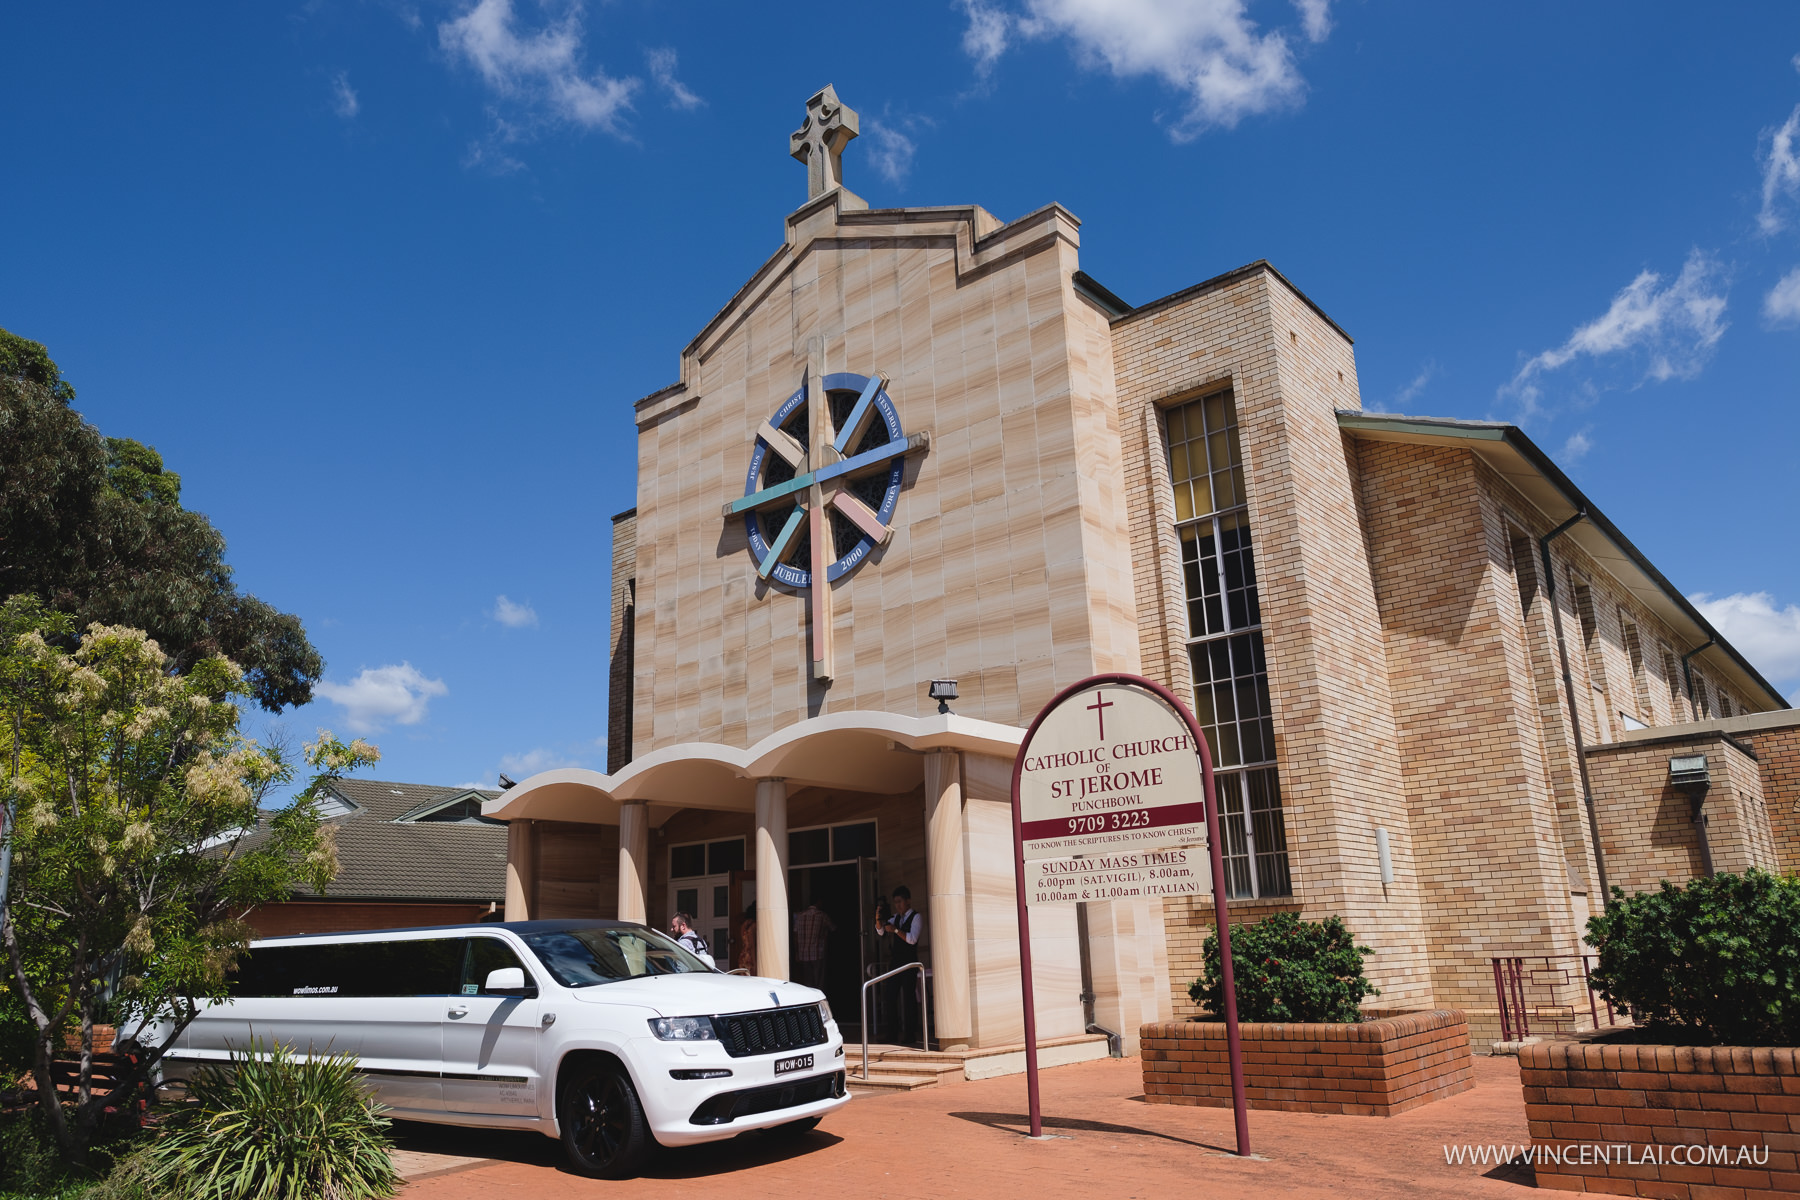 St Jerome's Catholic Church and Clarence House Wedding Reception